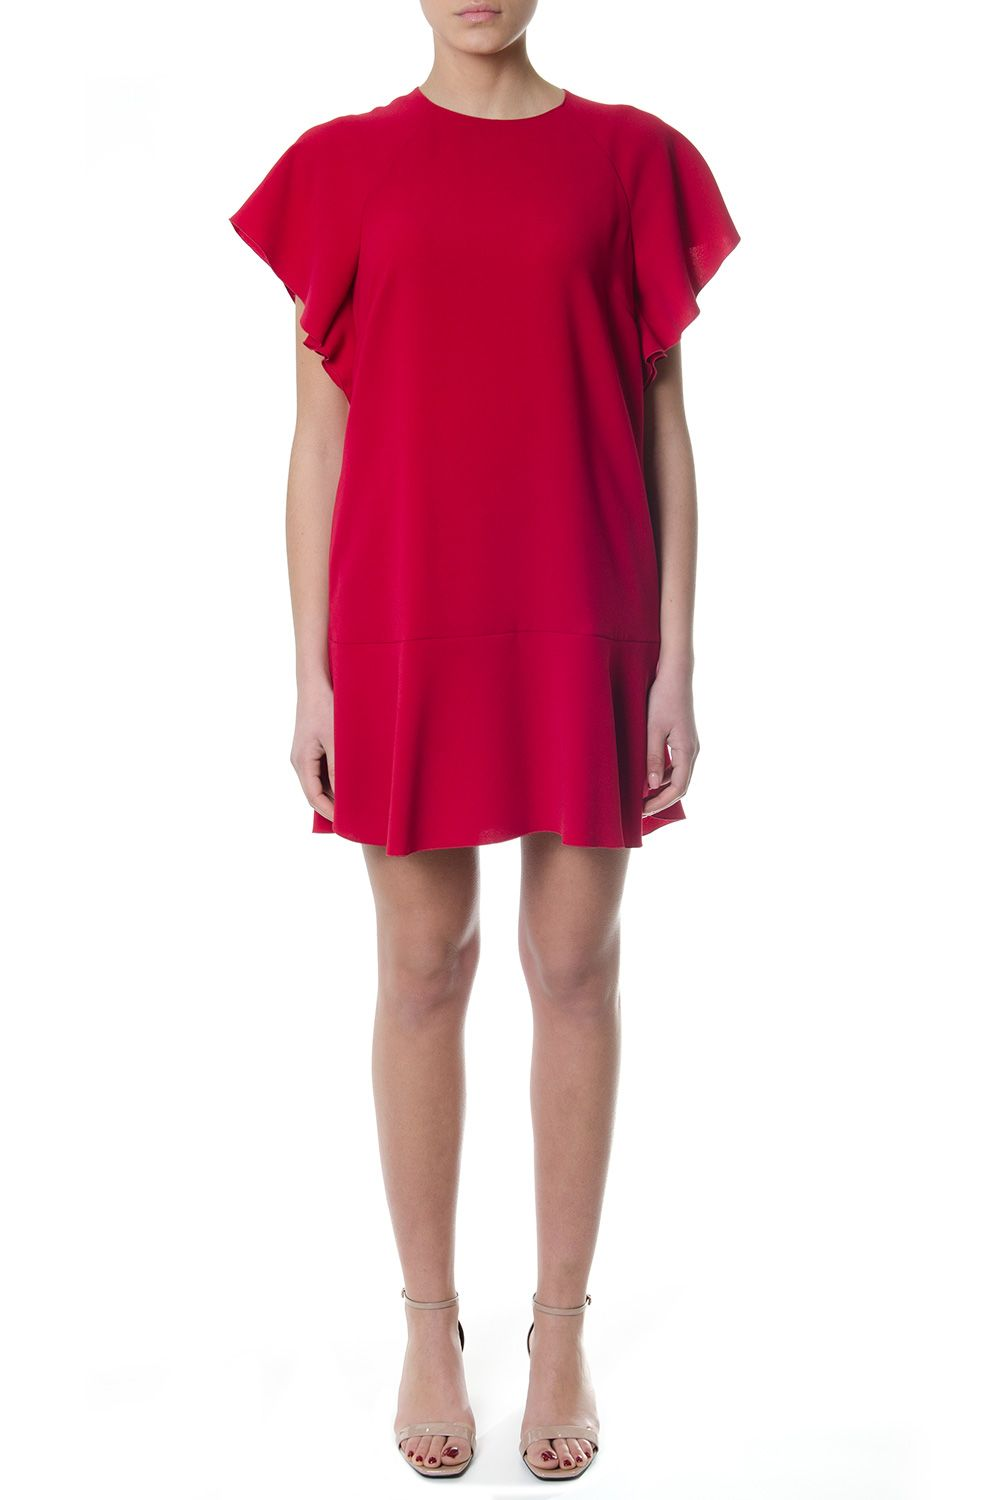 RED Valentino Red Flared T-shirt Dress